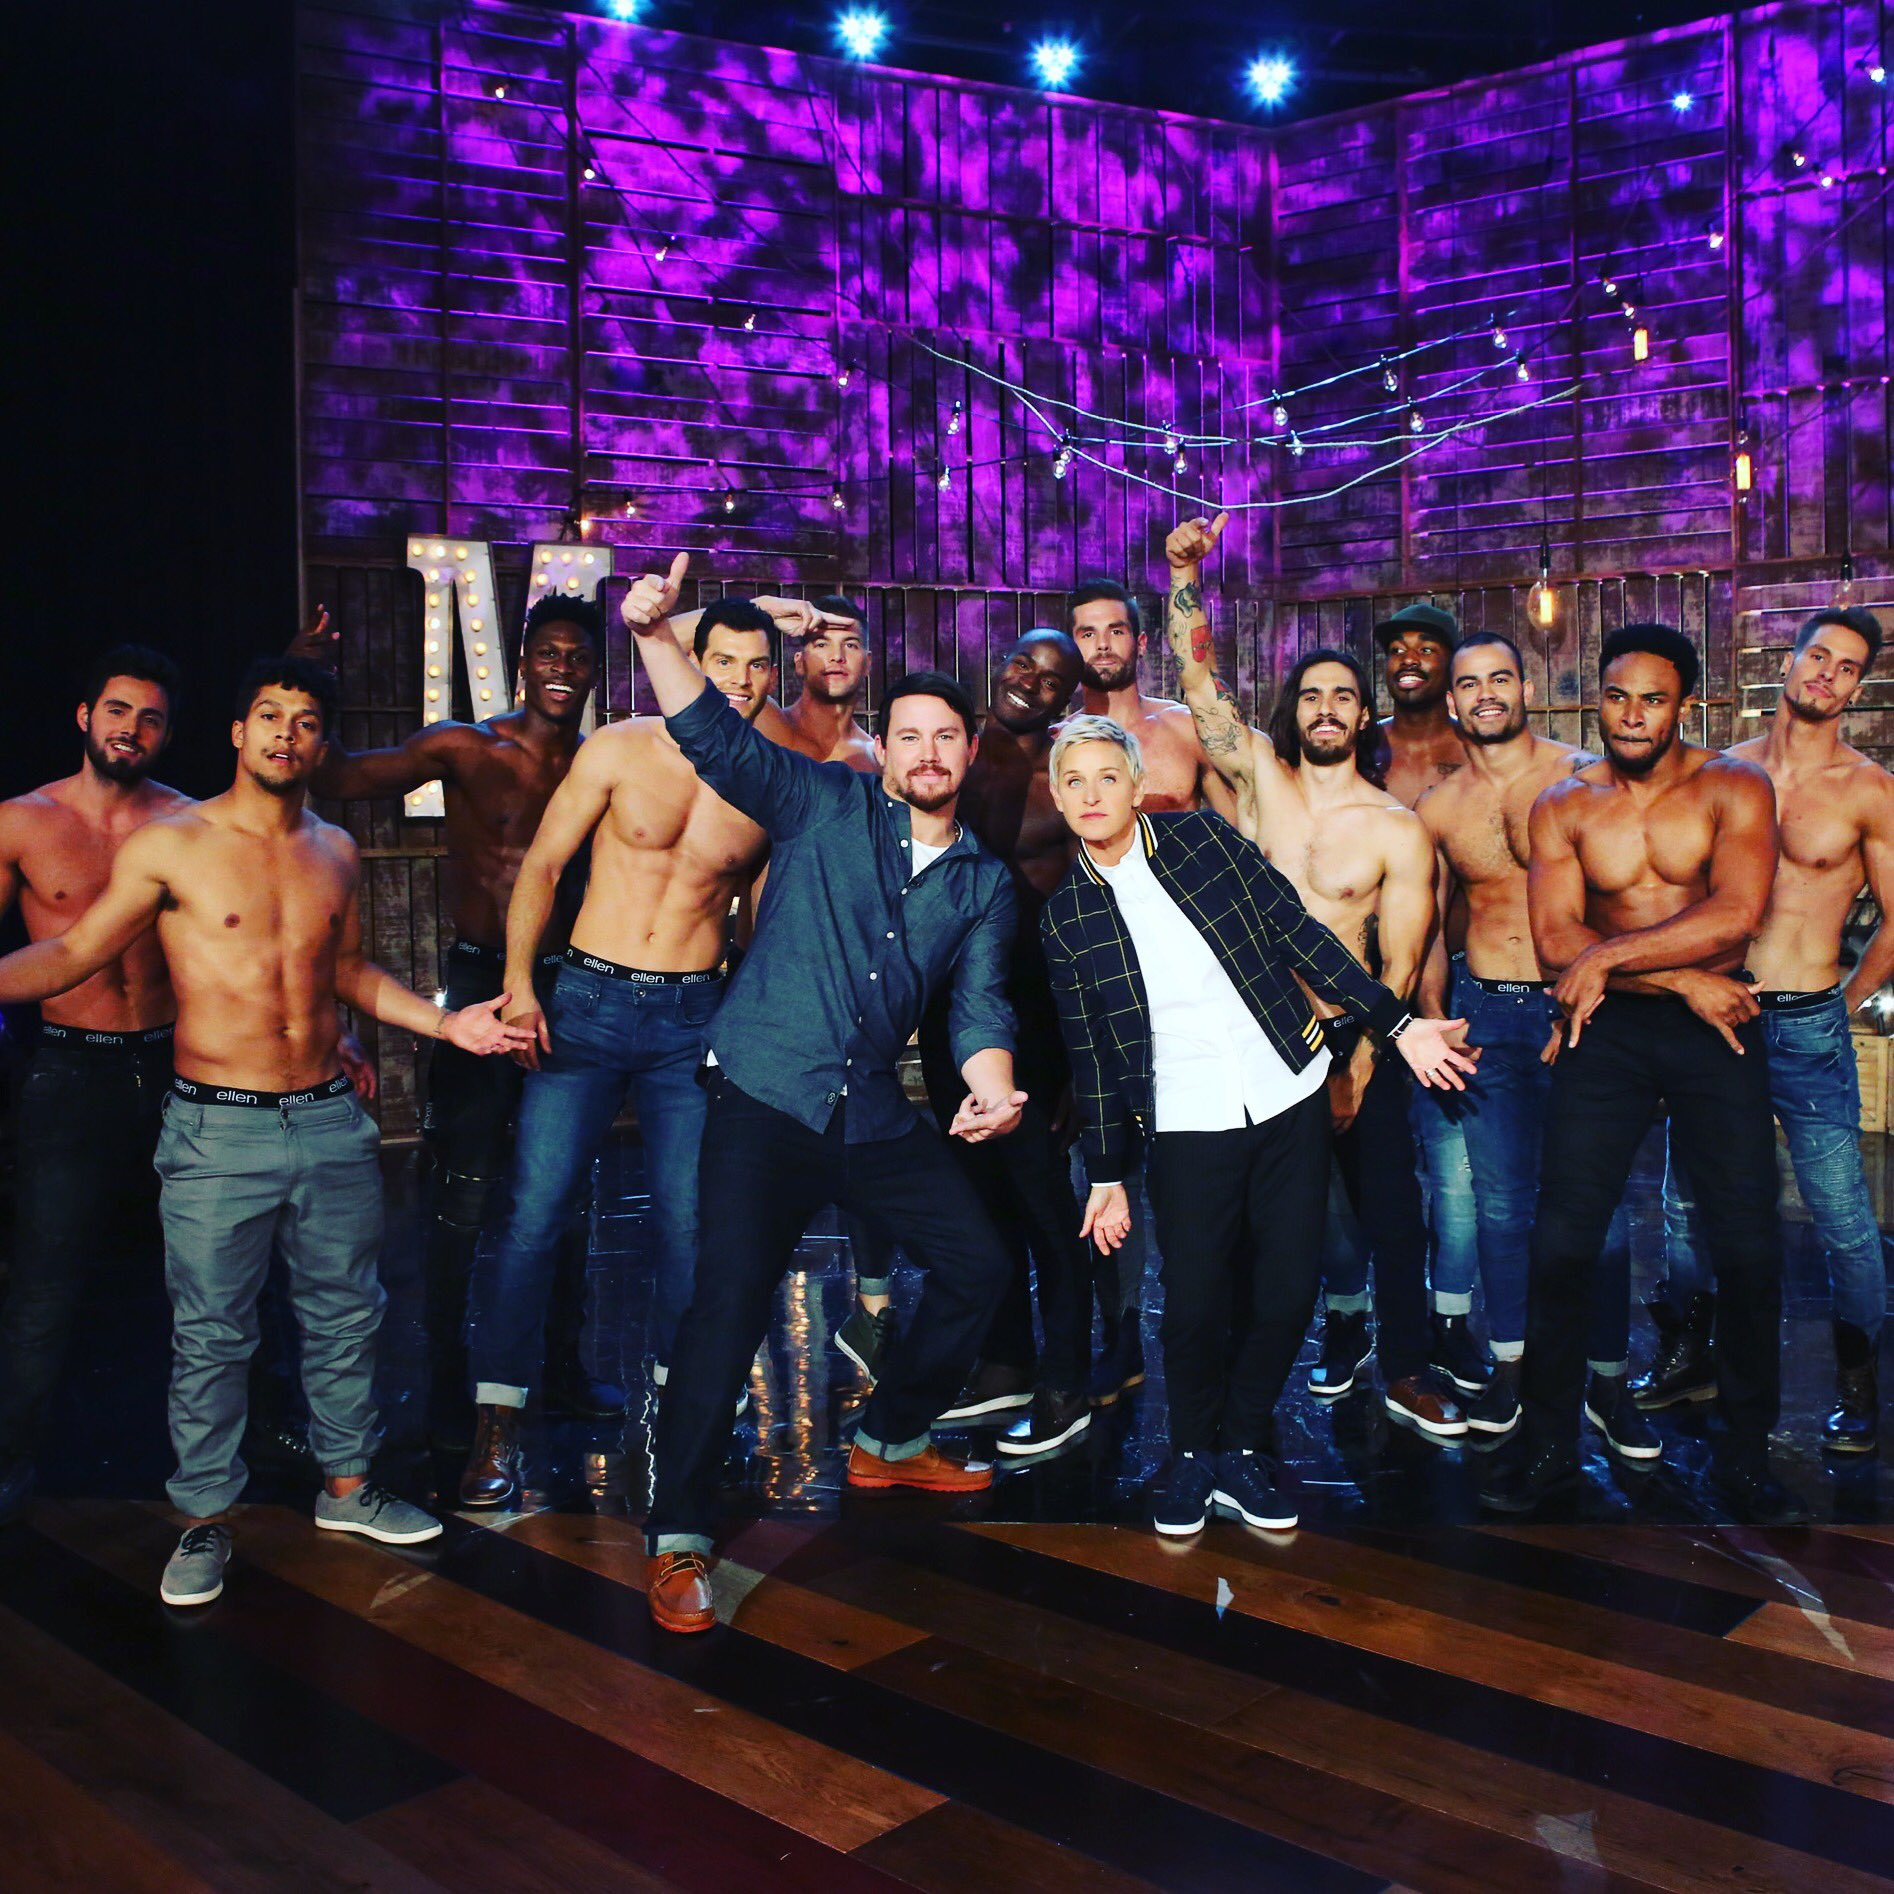 Thanks @TheEllenShow for making the uneaten carbs & rehearsals worth it. Sharing @magicmikelive w/ you all in 7days! https://t.co/3DDdvmCZHf